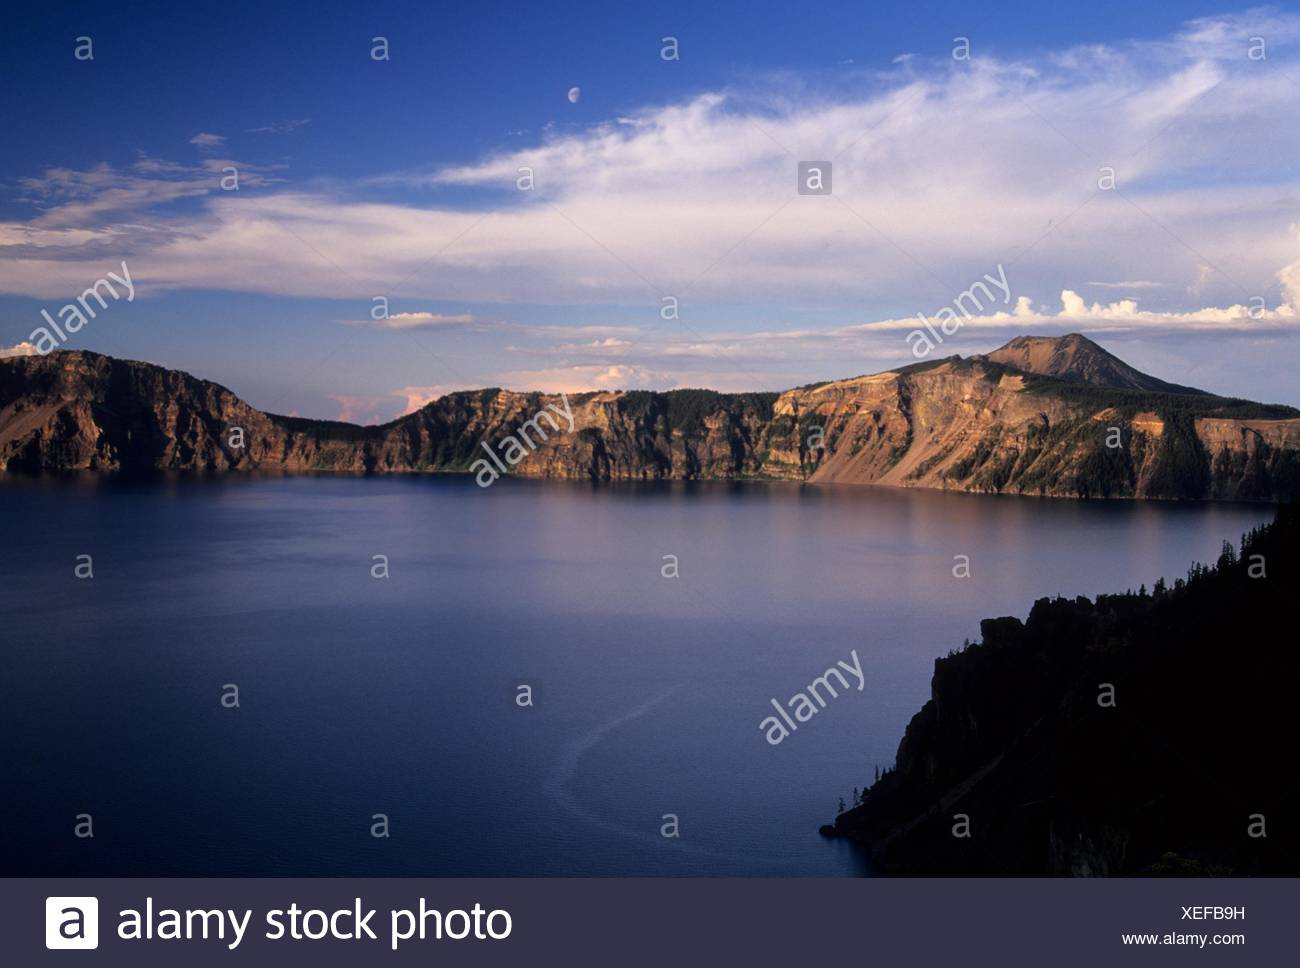 Crater Lake with moon near Pumice Point, Crater Lake National Park, Oregon. - Stock Image